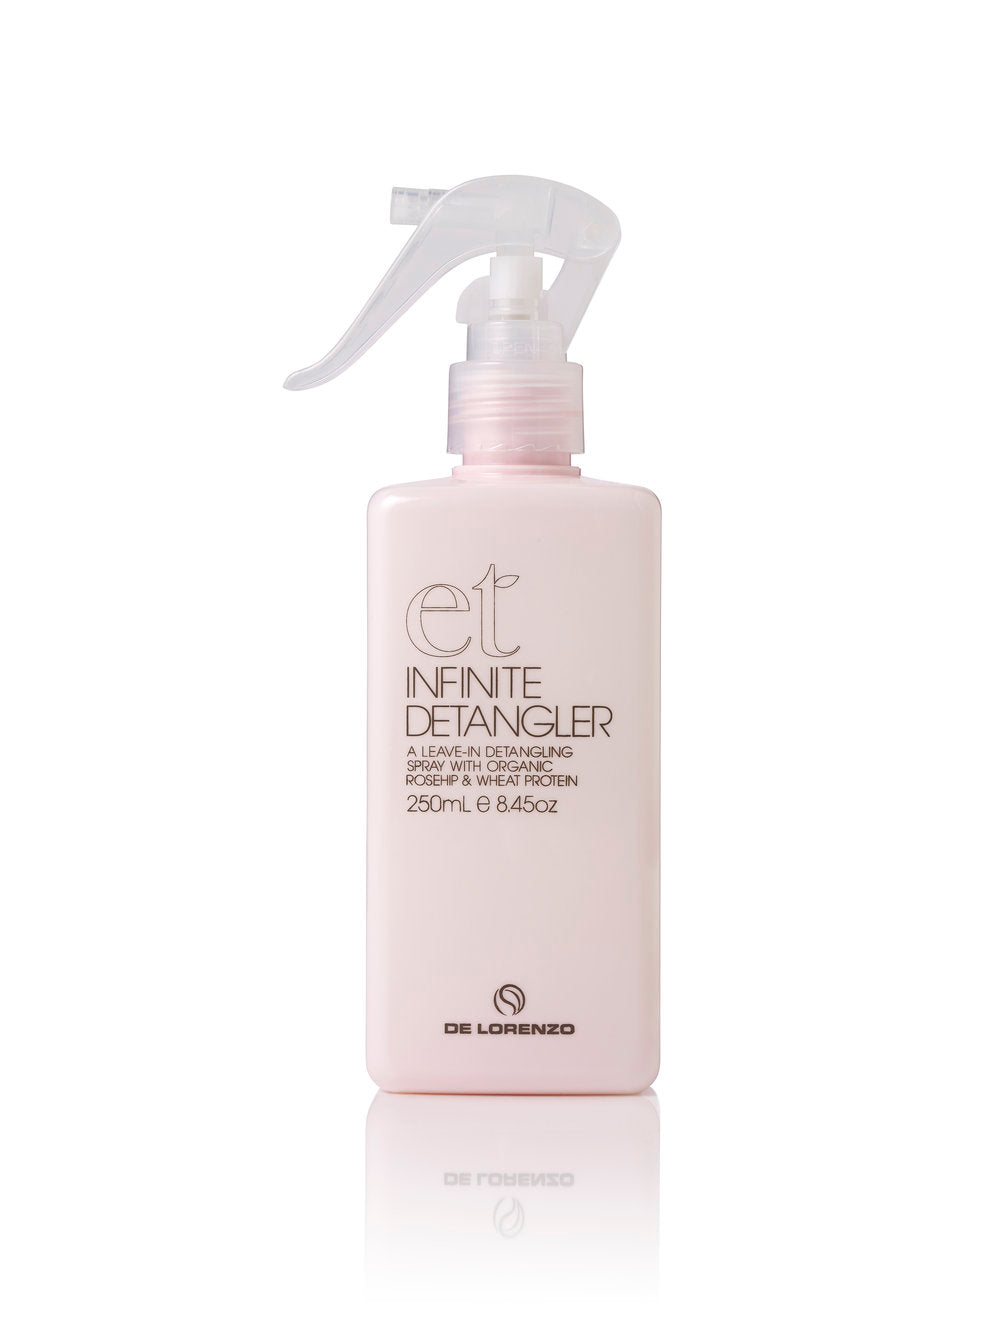 De Lorenzo Essential Treatments Infinite Detangler 250ml